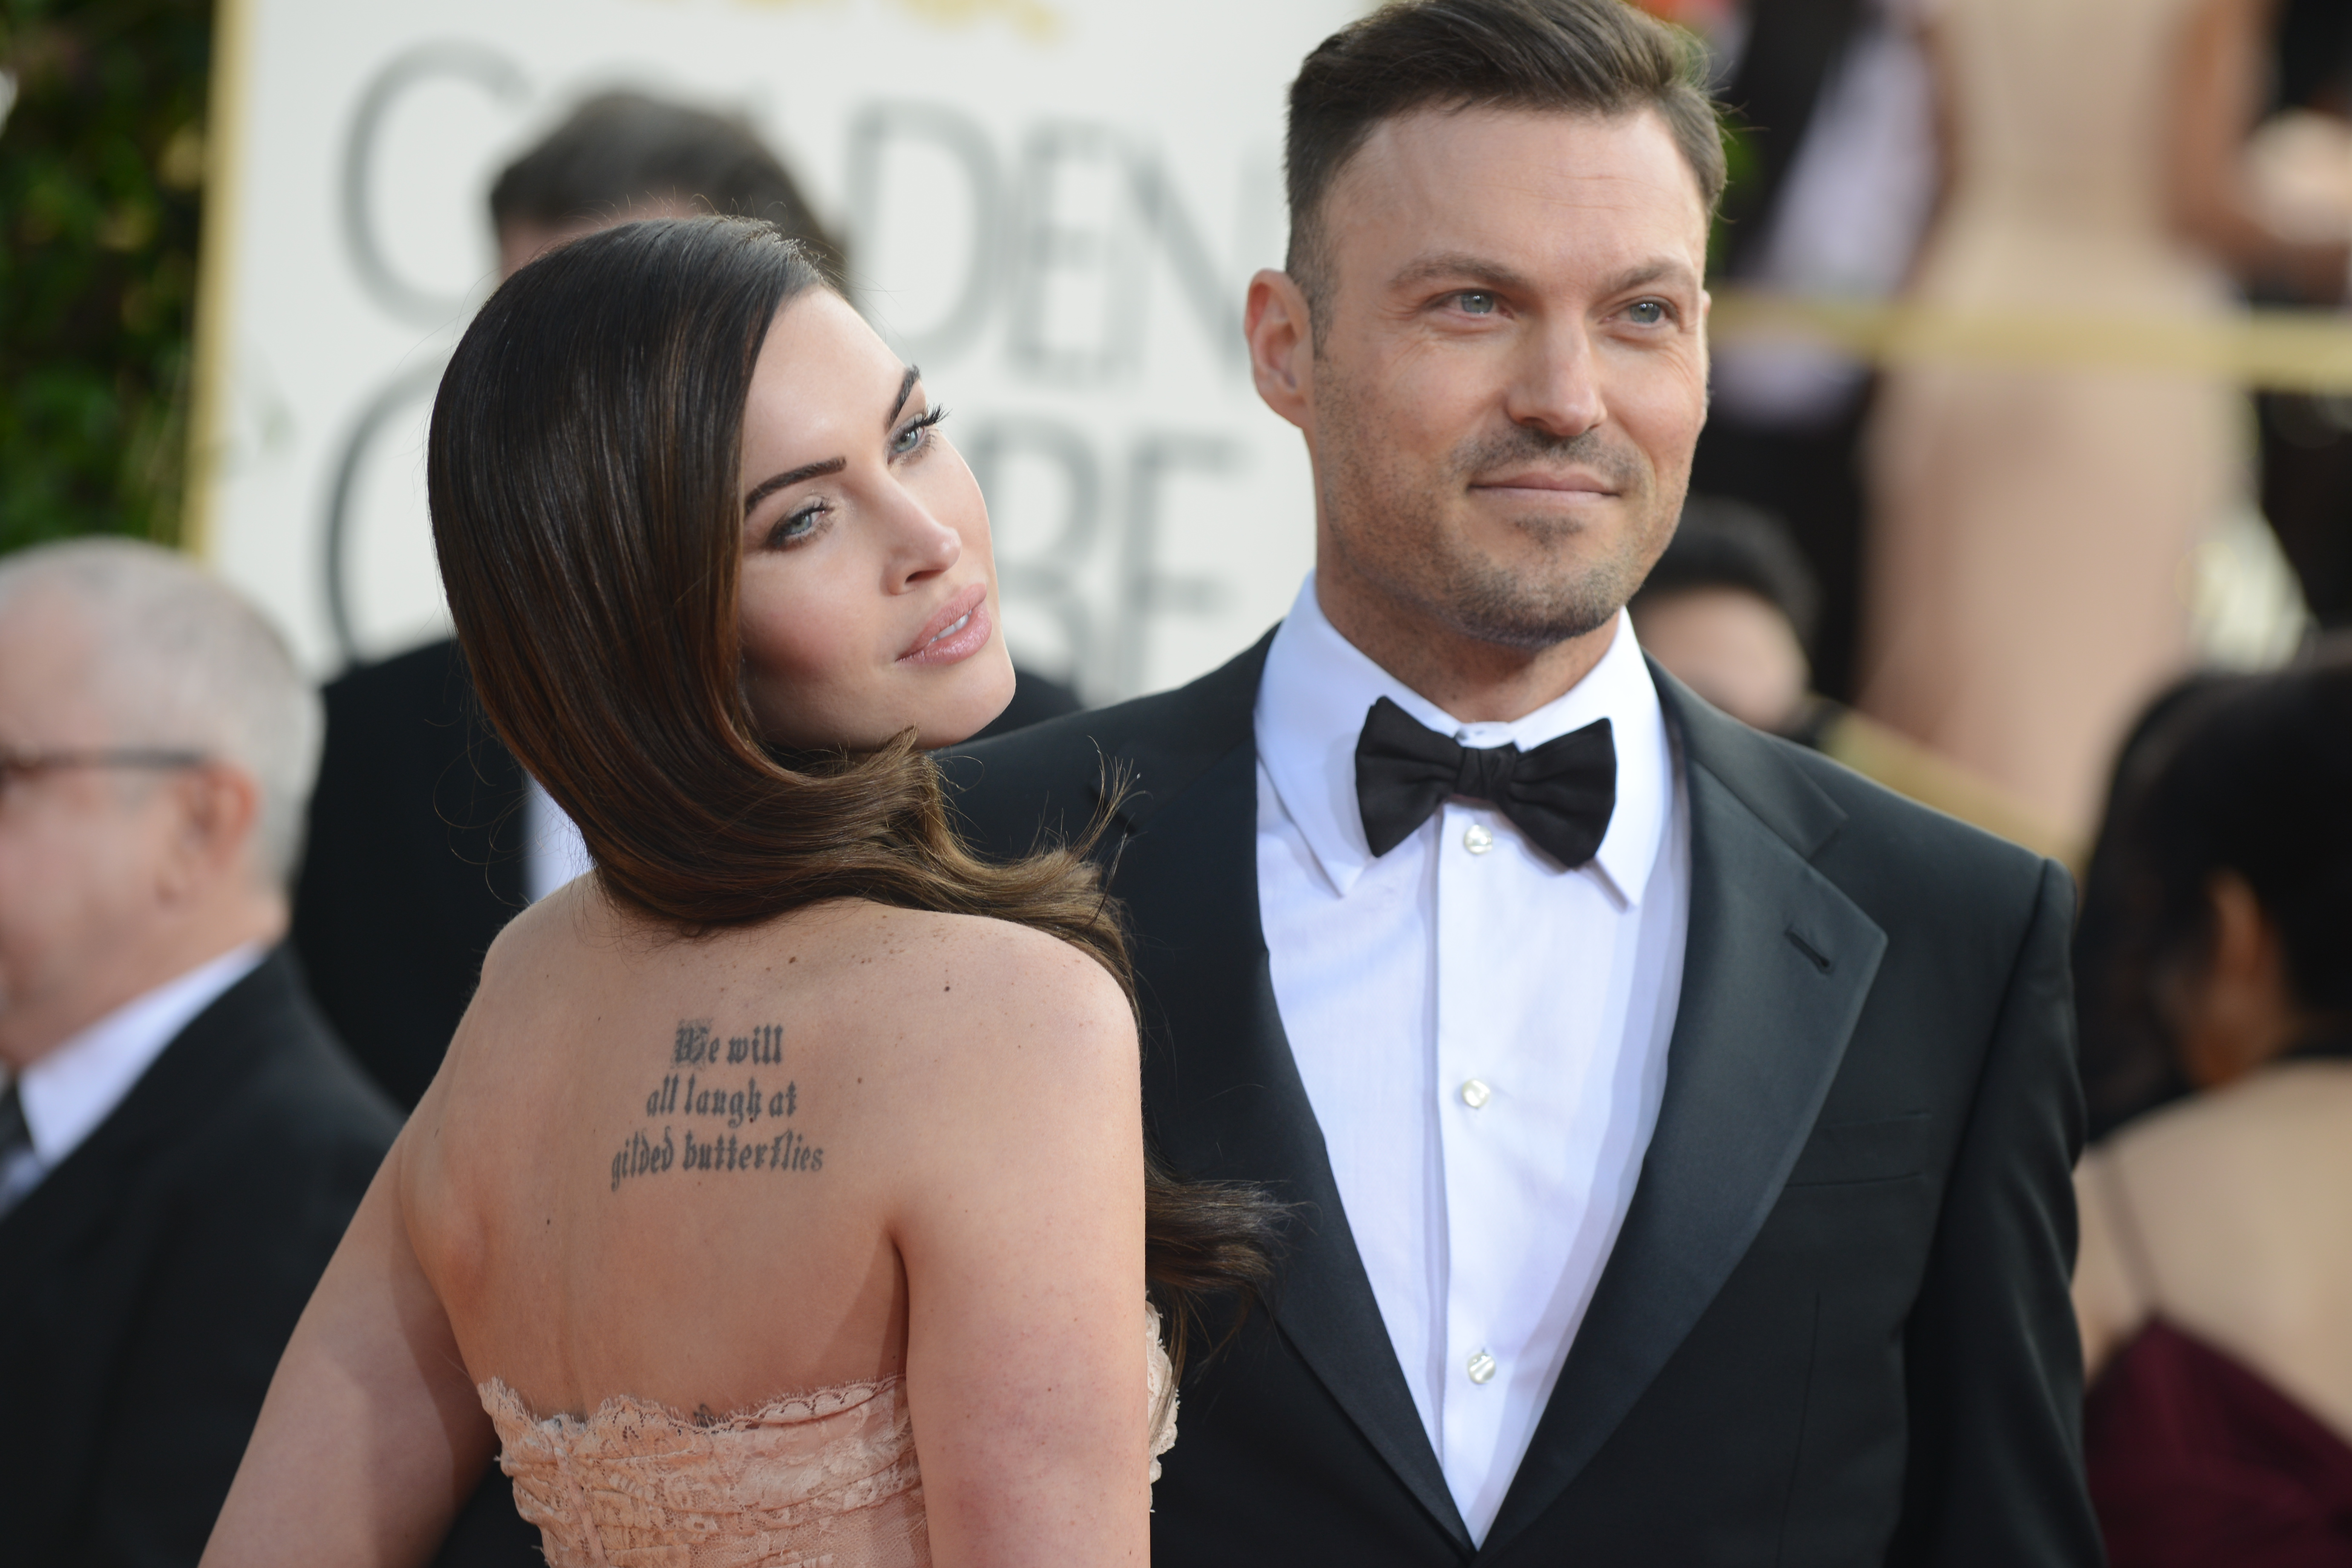 Megan Fox and Brian Austin Green at the 70th Annual Golden Globe Awards in Beverly Hills, Calif. on Jan. 13, 2013.